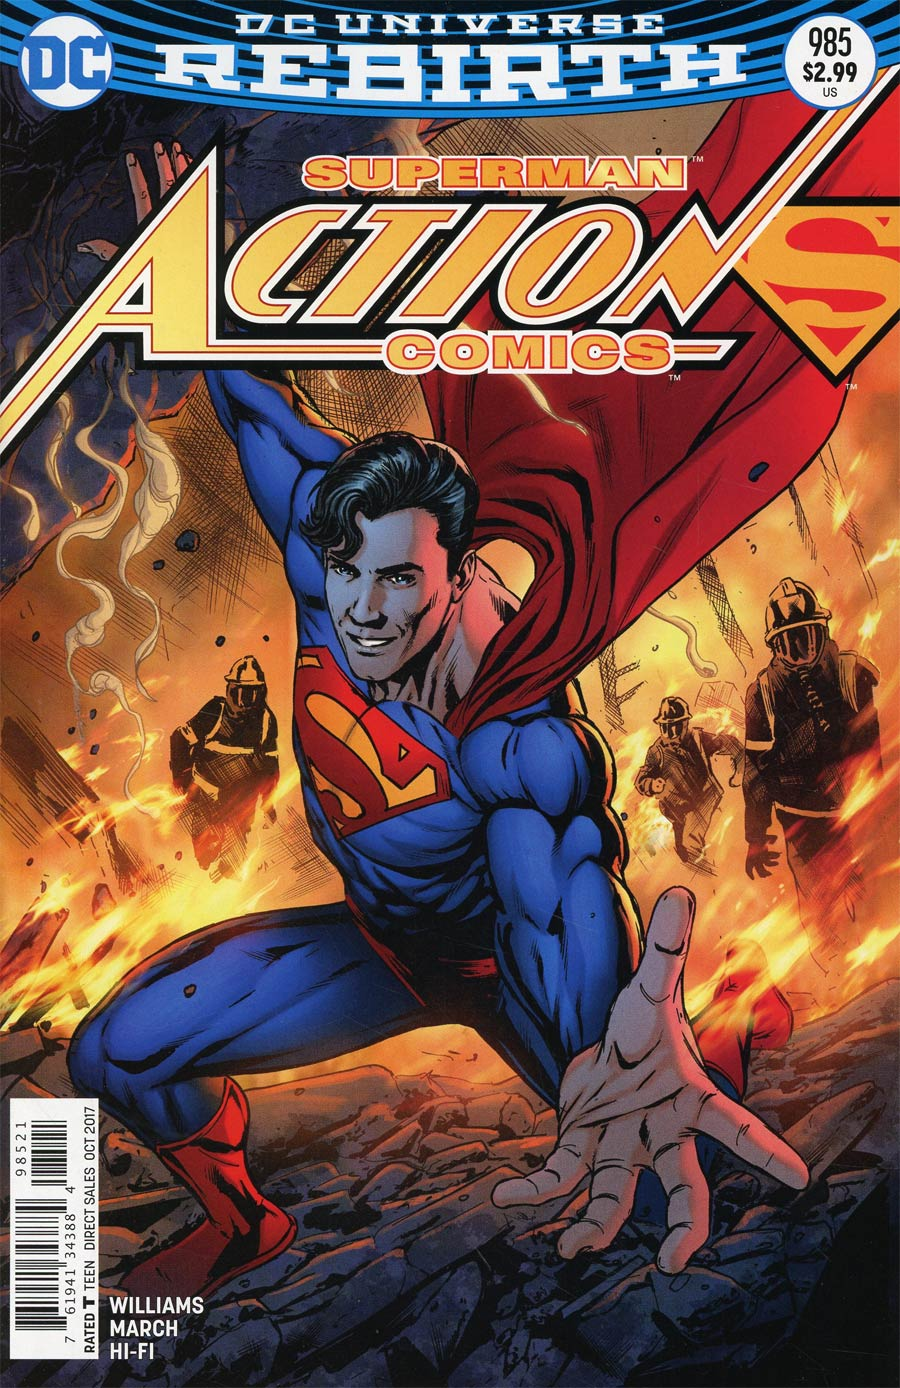 Action Comics Vol 2 #985 Cover B Variant Neil Edwards & Jay Leisten Cover